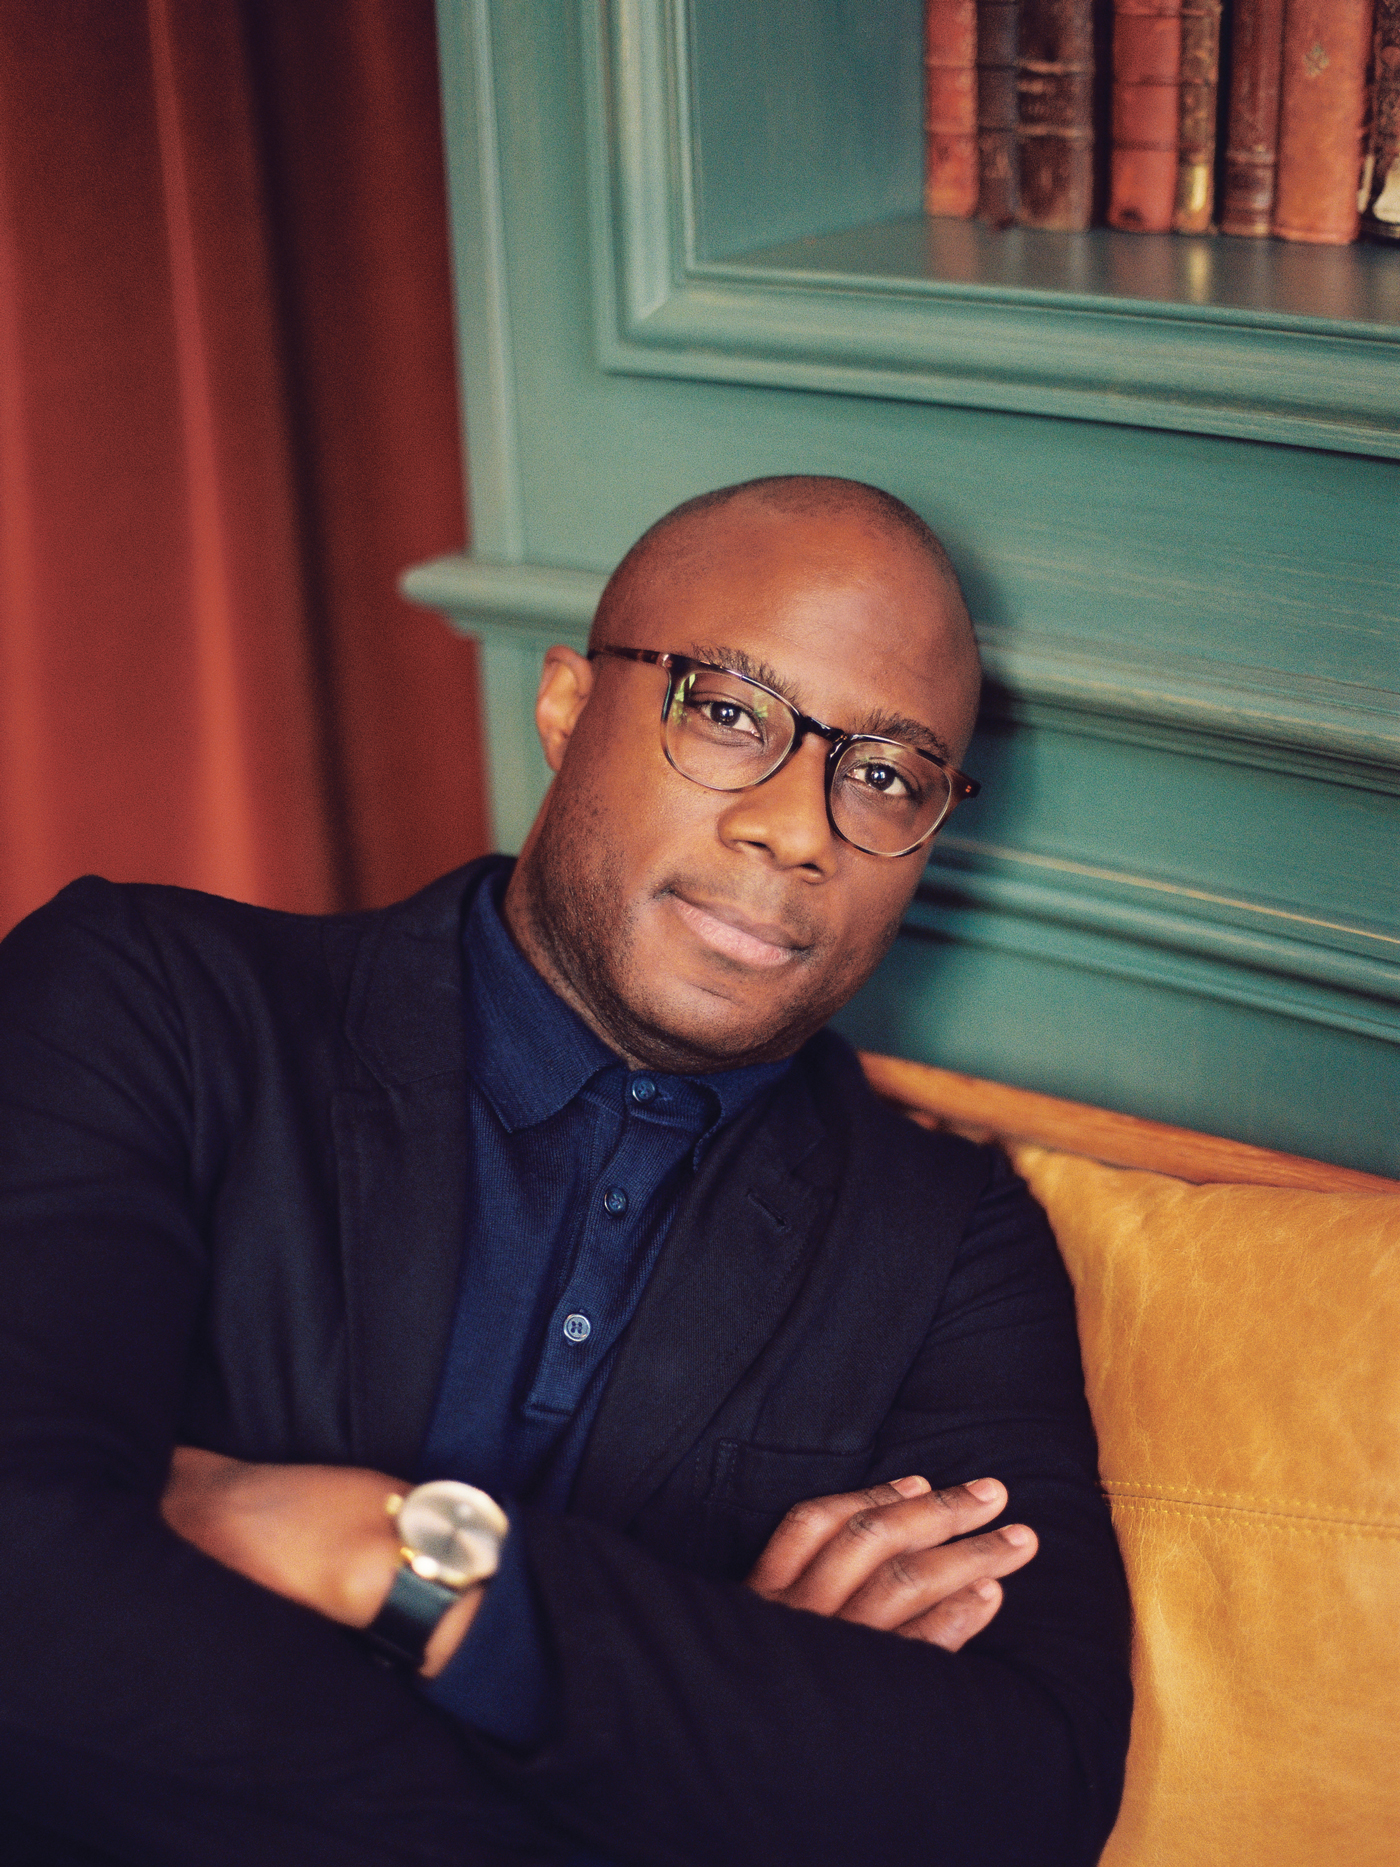 01_TC_BarryJenkins